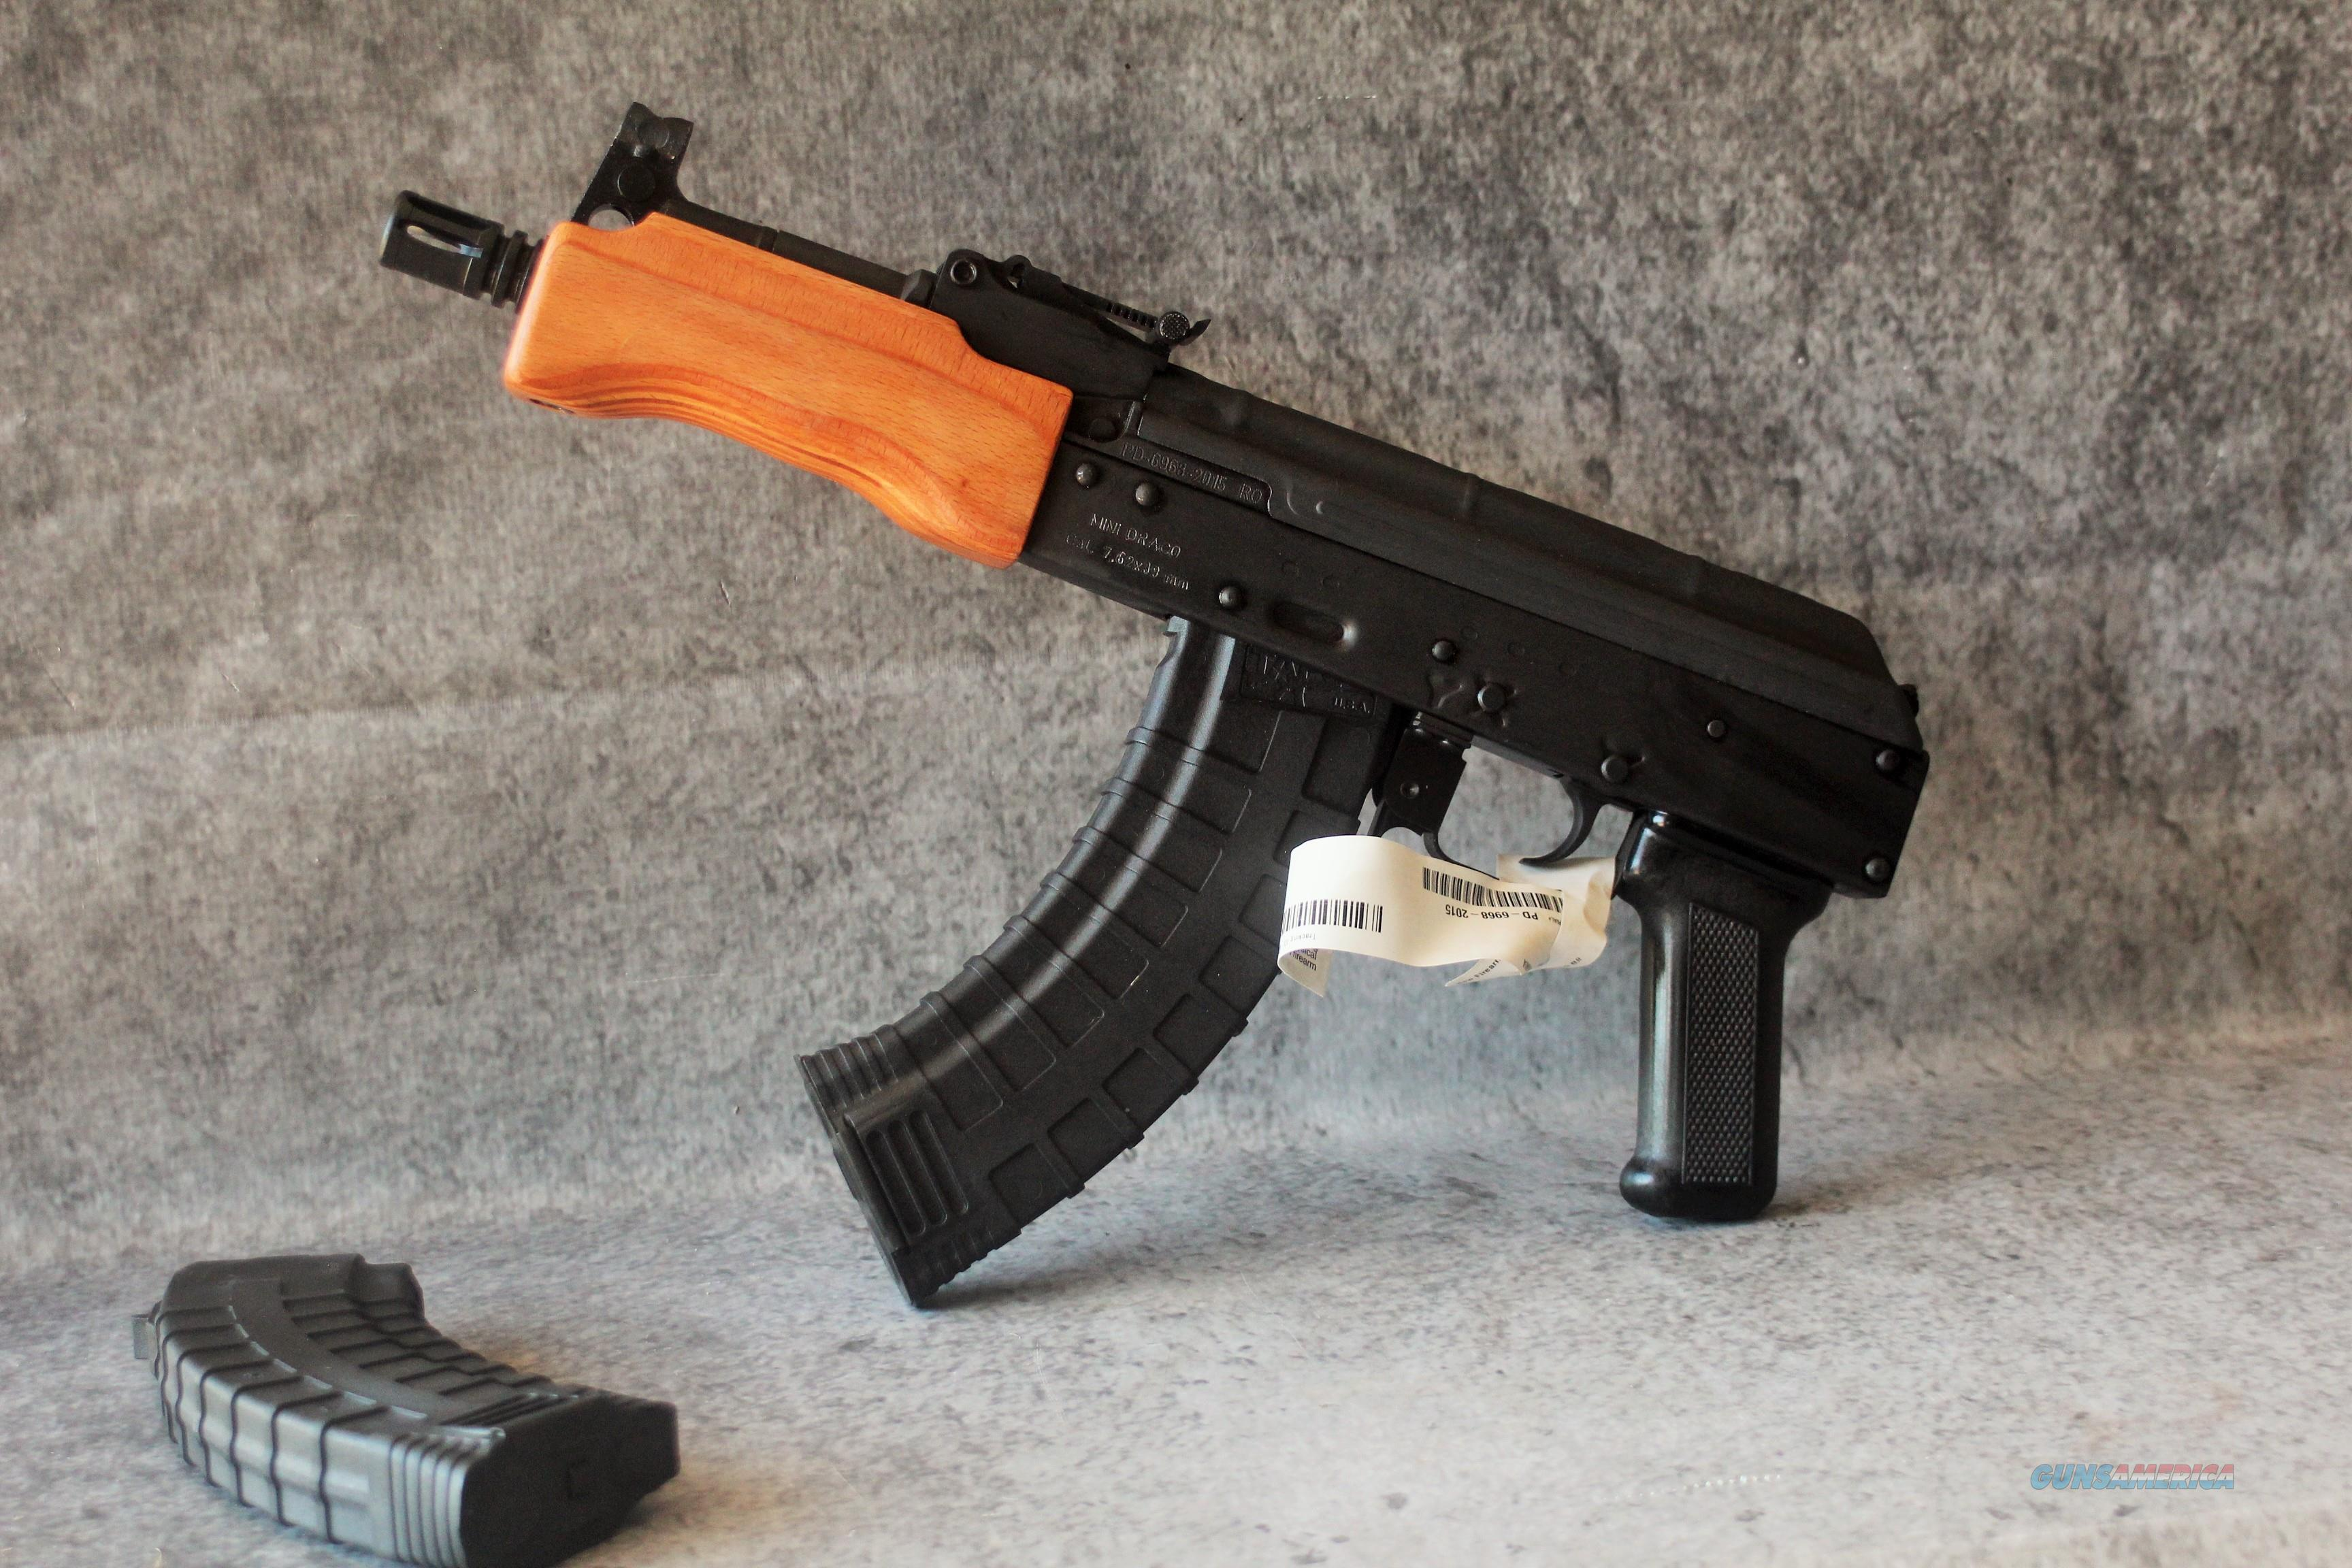 EASY PAY $50 layaway Pistol Grip Century Arms Mini Draco Chrome Lined AK  style handgu 4k-47 rd